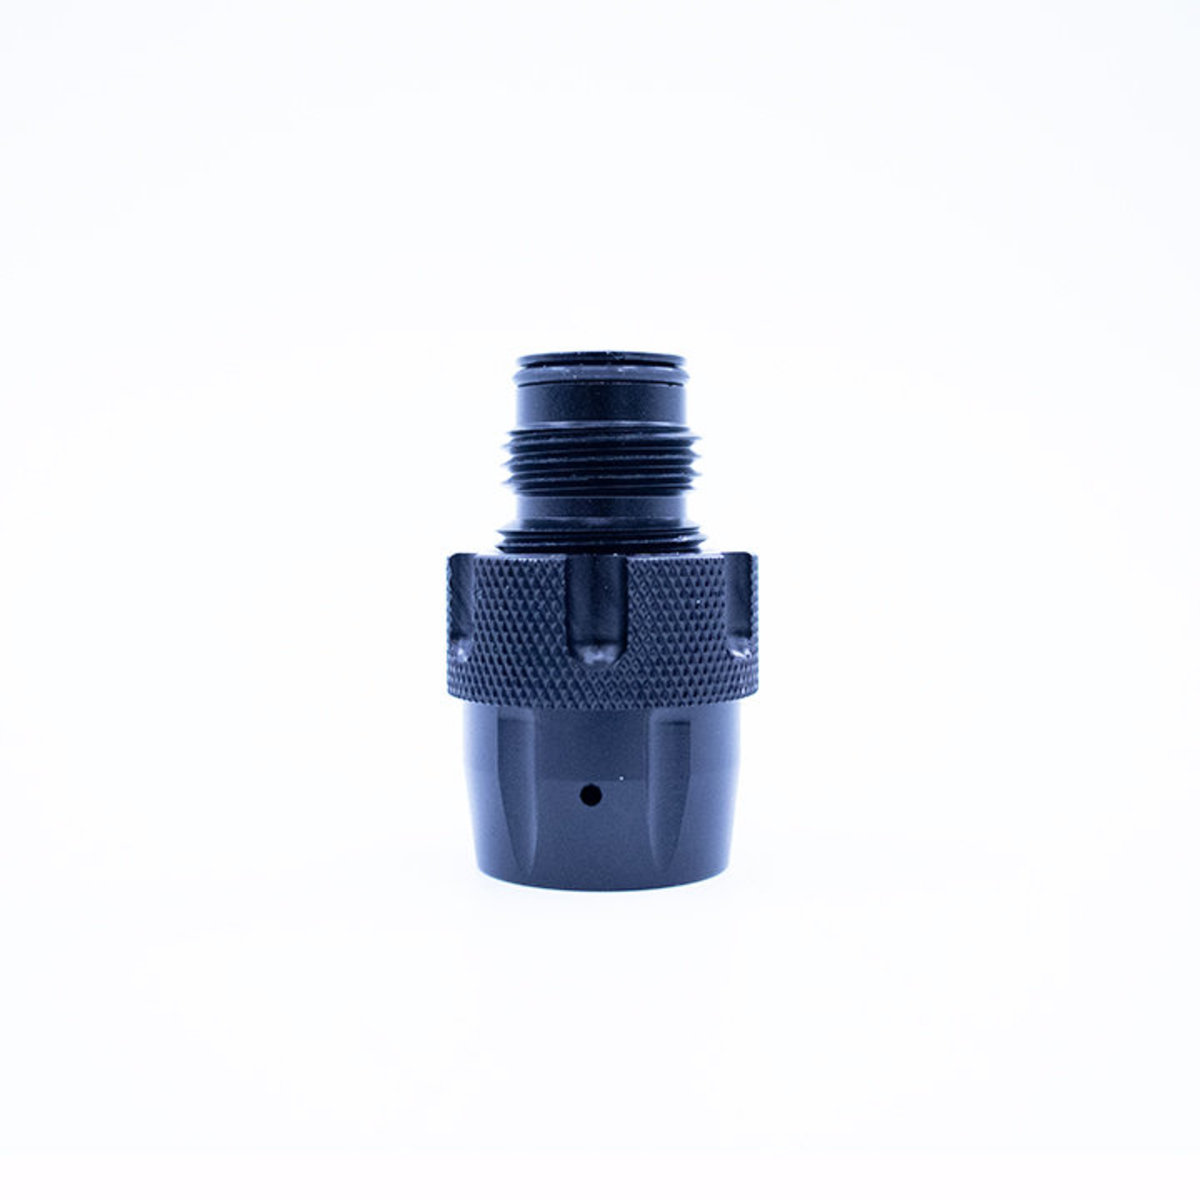 View larger image of Valken Ultra On/Off ASA Adapter